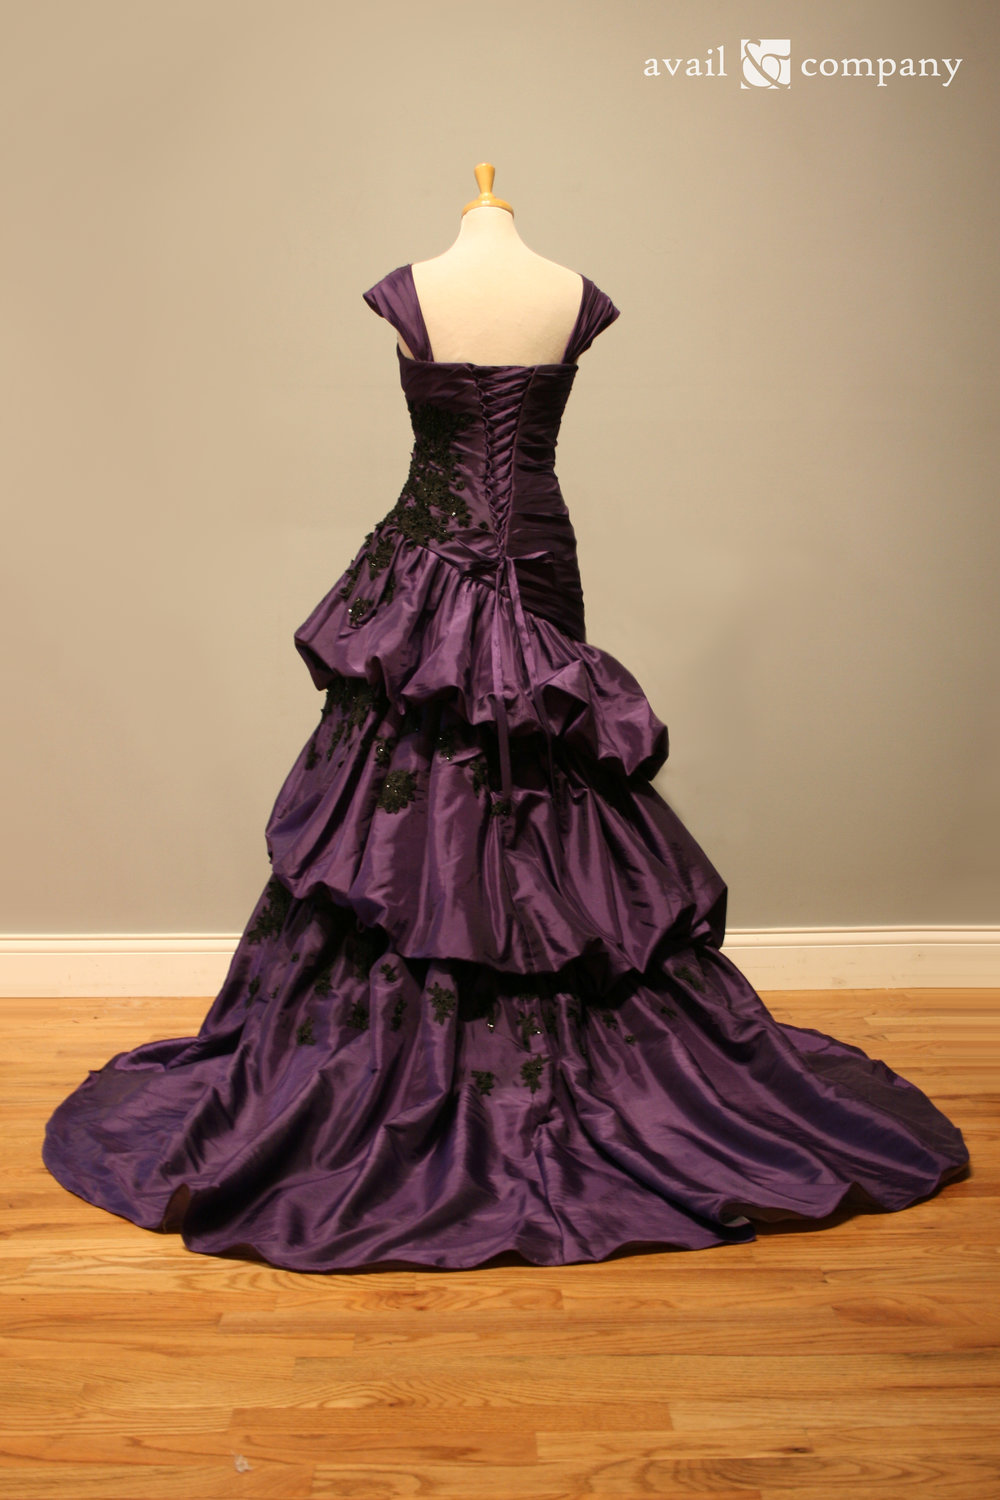 !Purple Wedding Dress Gothic Black Lace 008-0009.jpg